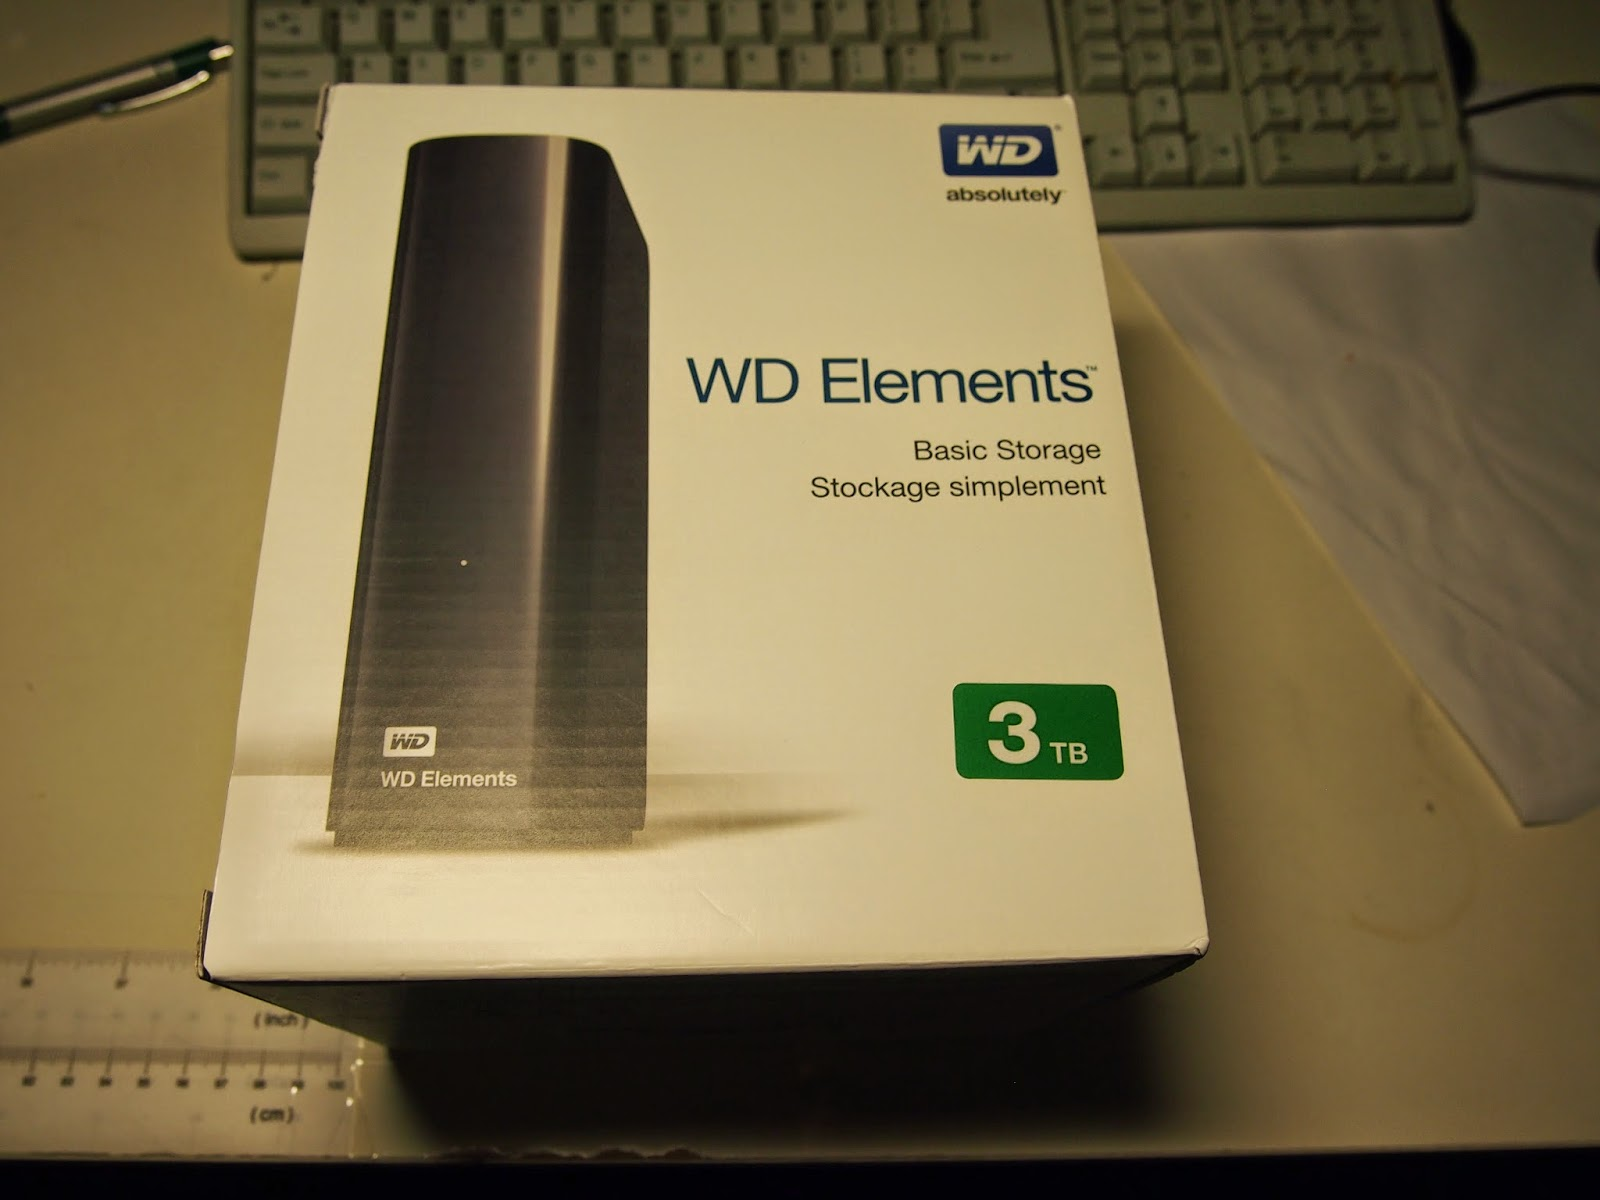 Seagate 500gb External HDD - Unallocated, Unaccessible ...